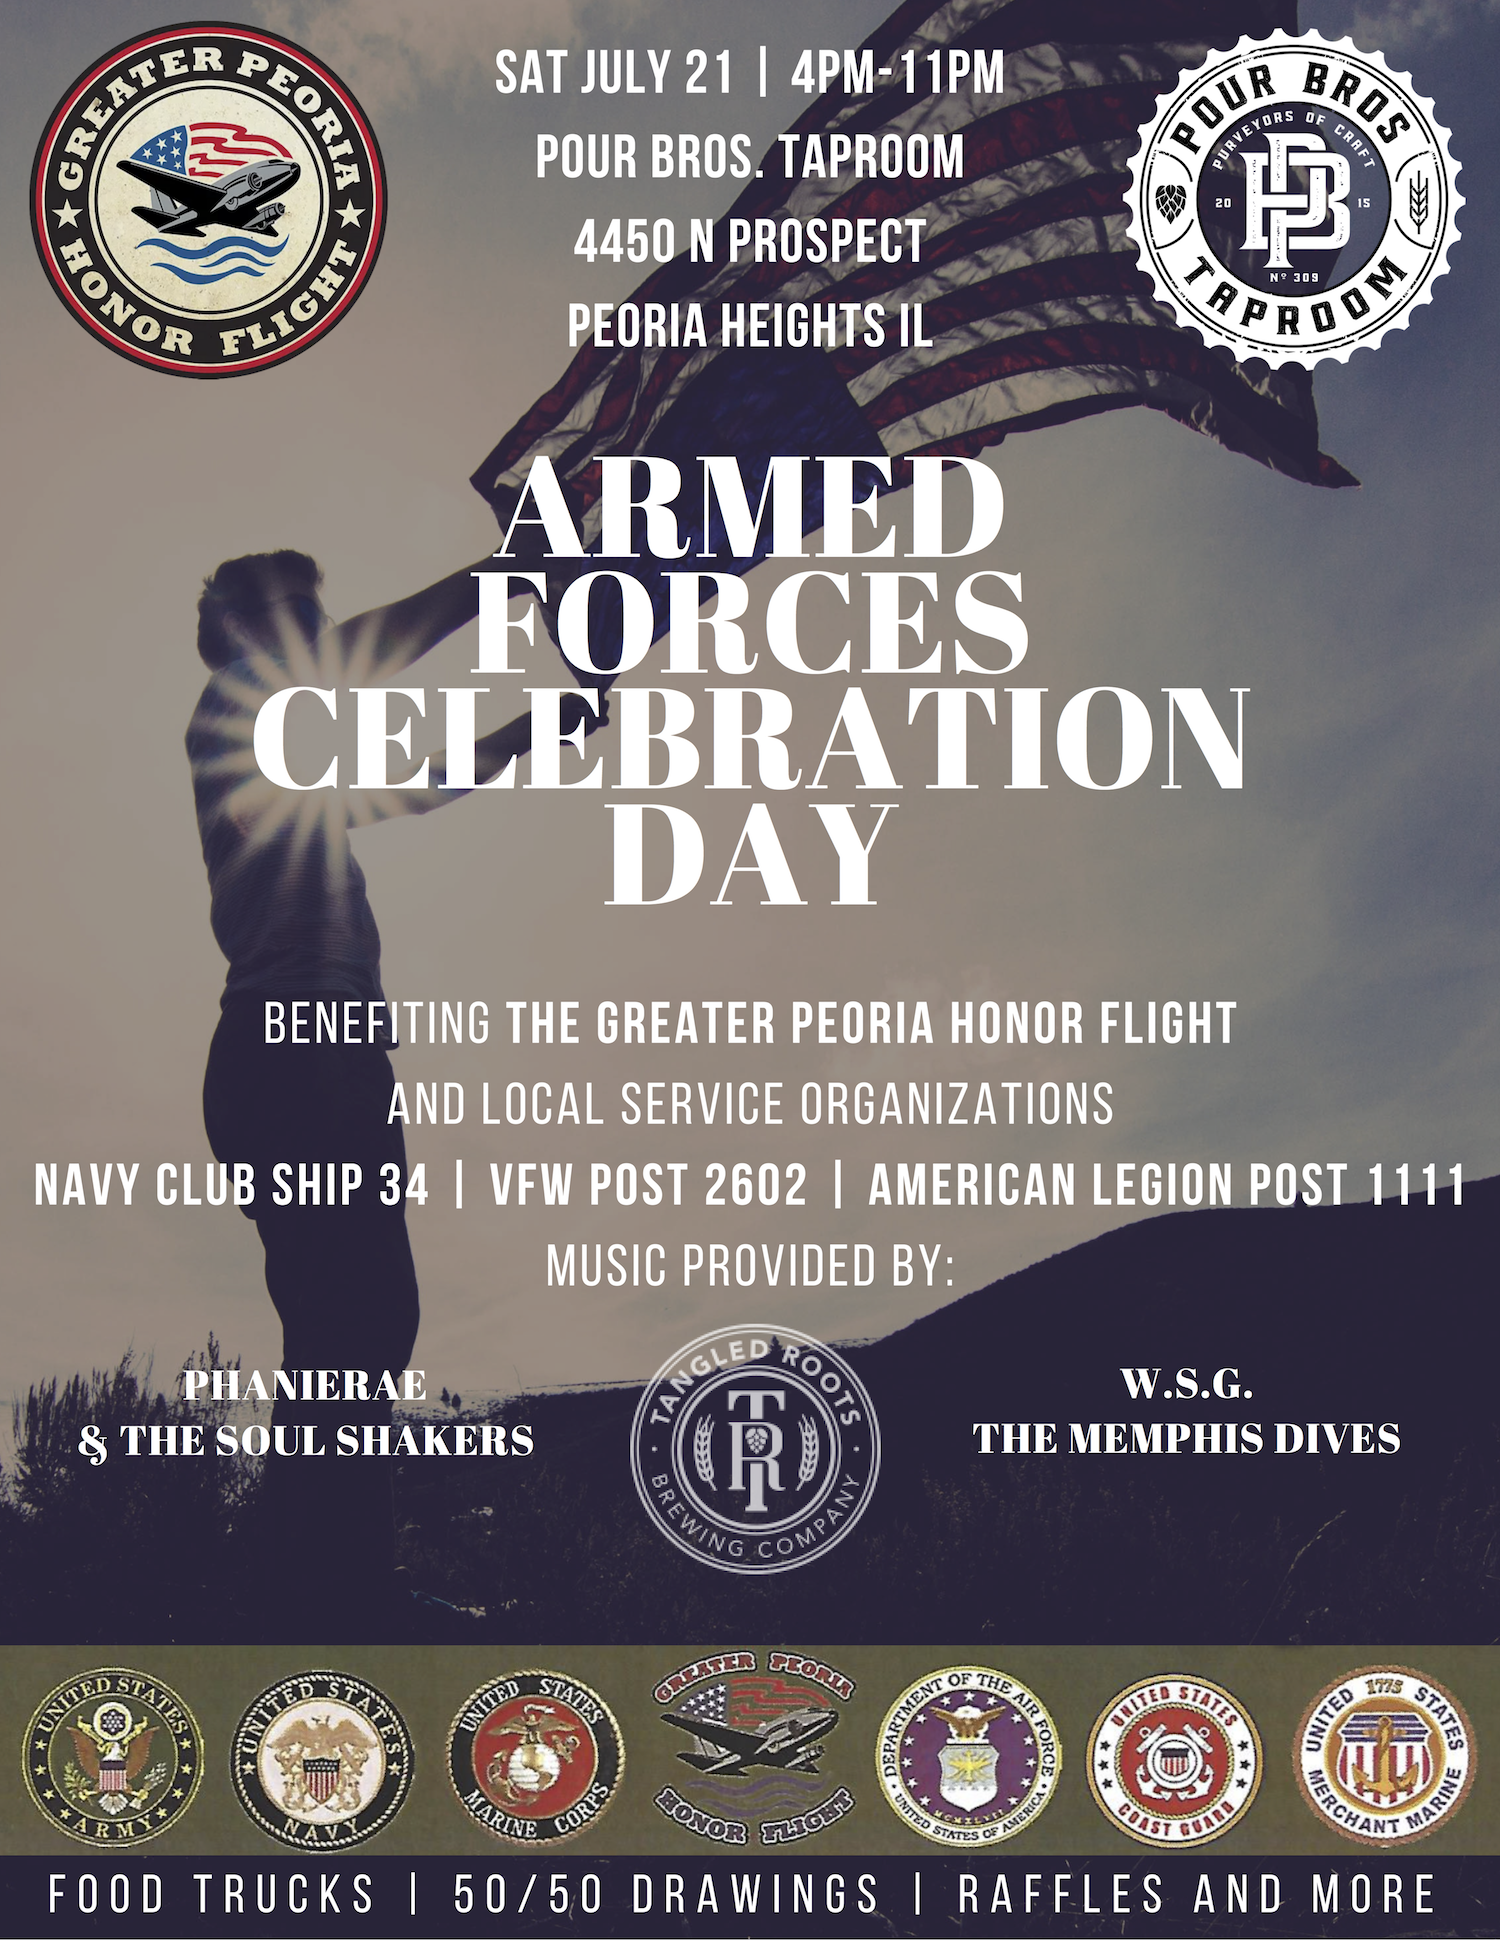 Armed forces celebration day promo.png